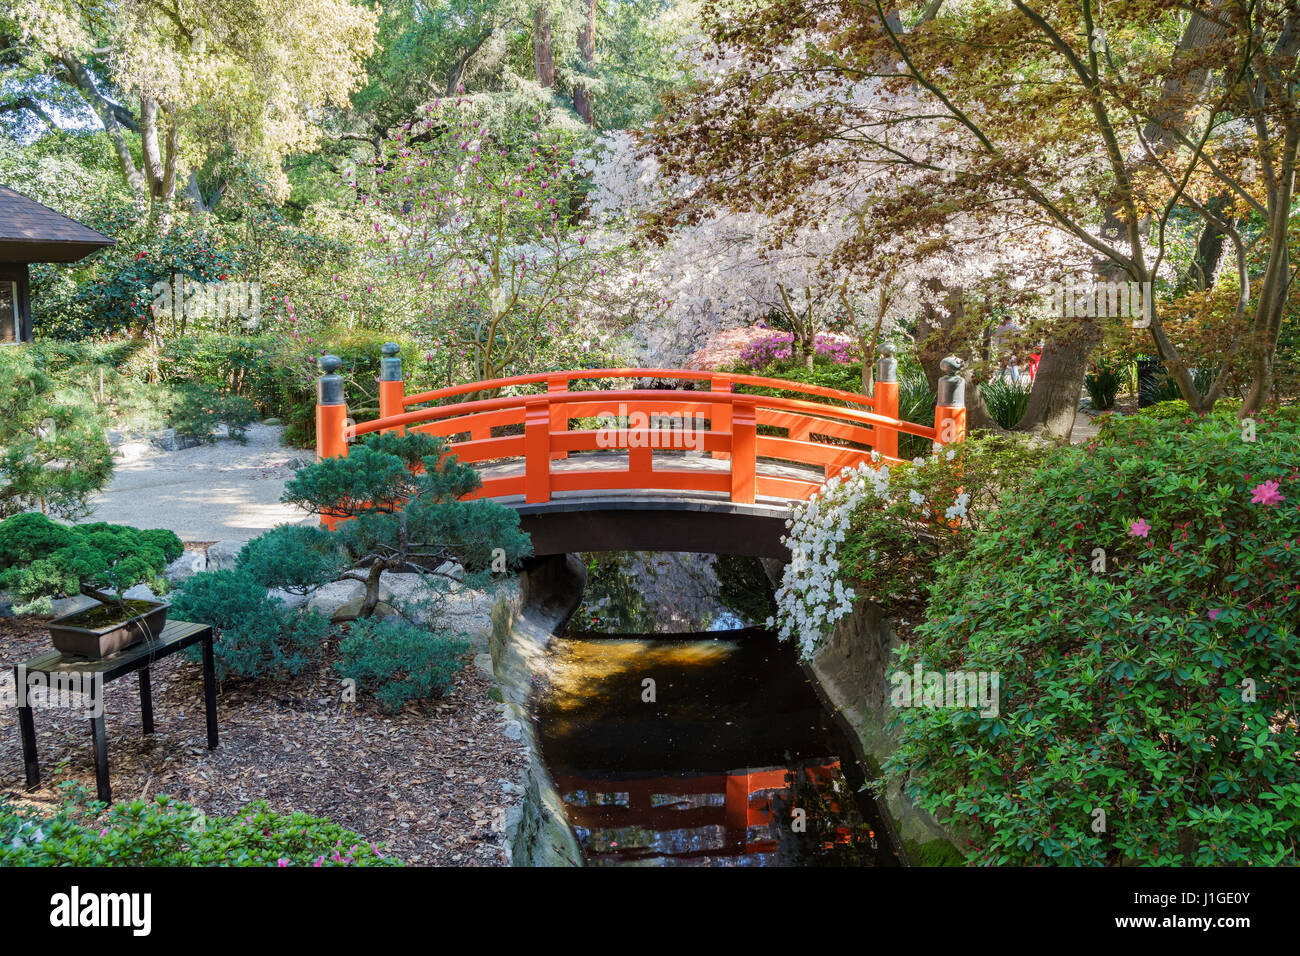 Japanese Garden Cherry Blossom Bridge japanese garden bridge nature stock photos & japanese garden